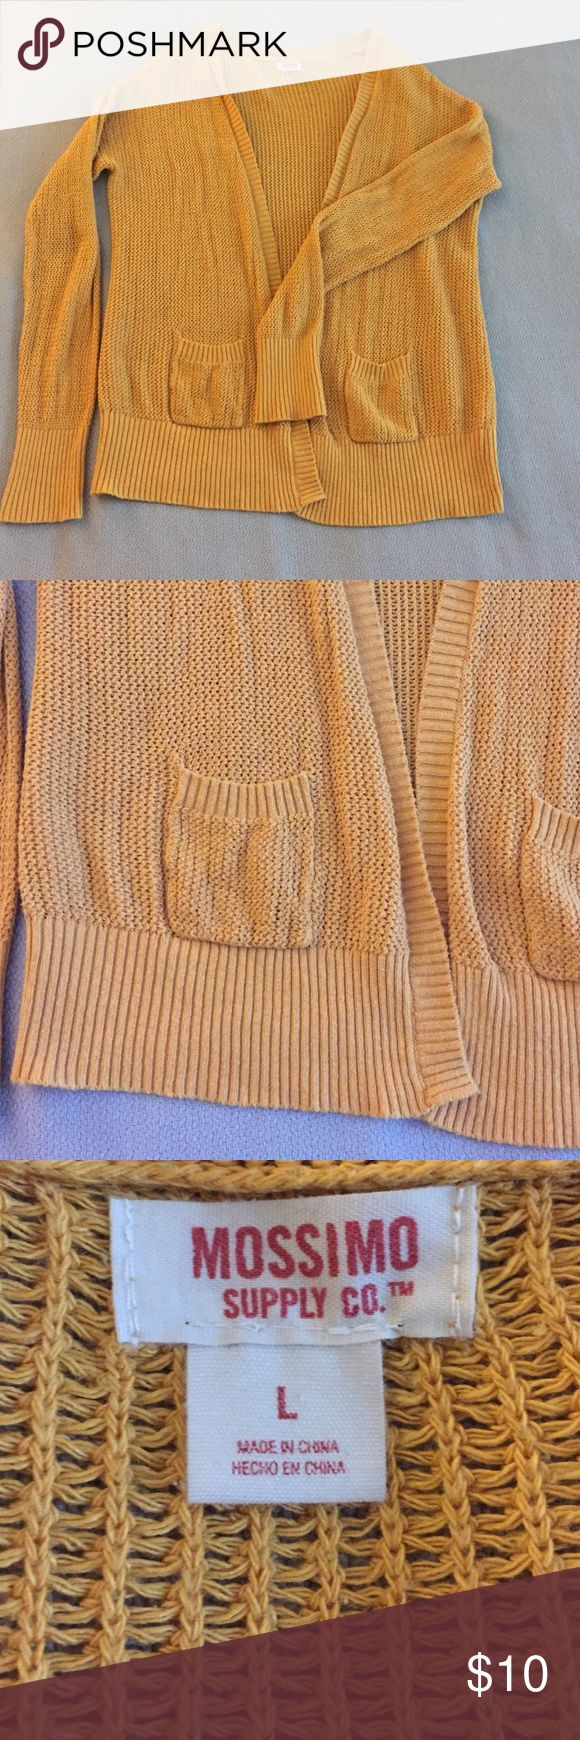 Mustard Yellow Cardigan Mustard yellow cardigan. Two small pockets. Cozy! Mossimo Supply Co Sweaters Cardigans